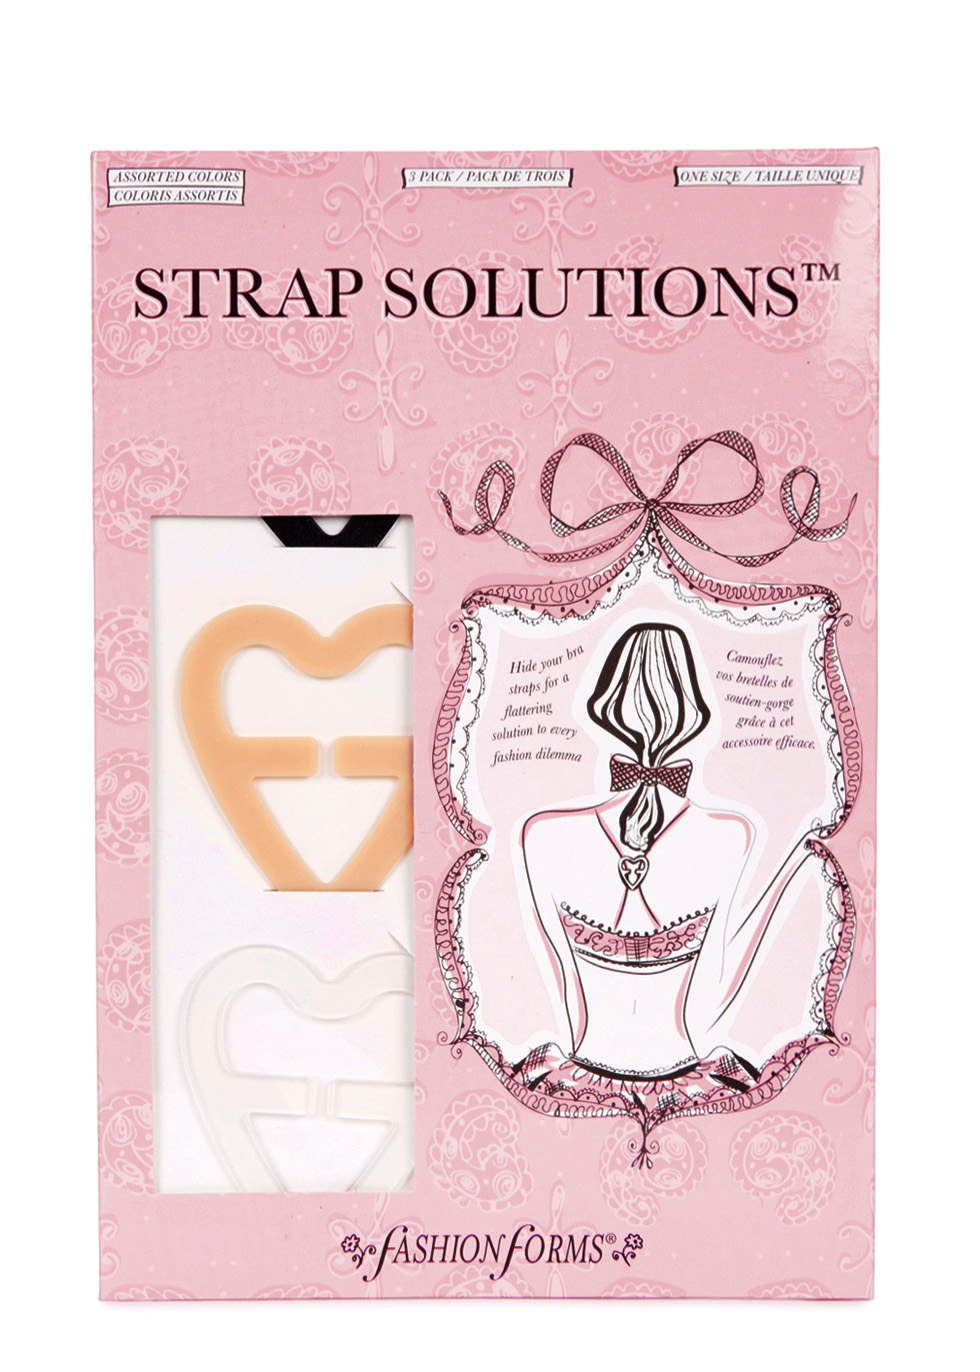 Bra strap solutions - set of 3 - FASHION FORMS